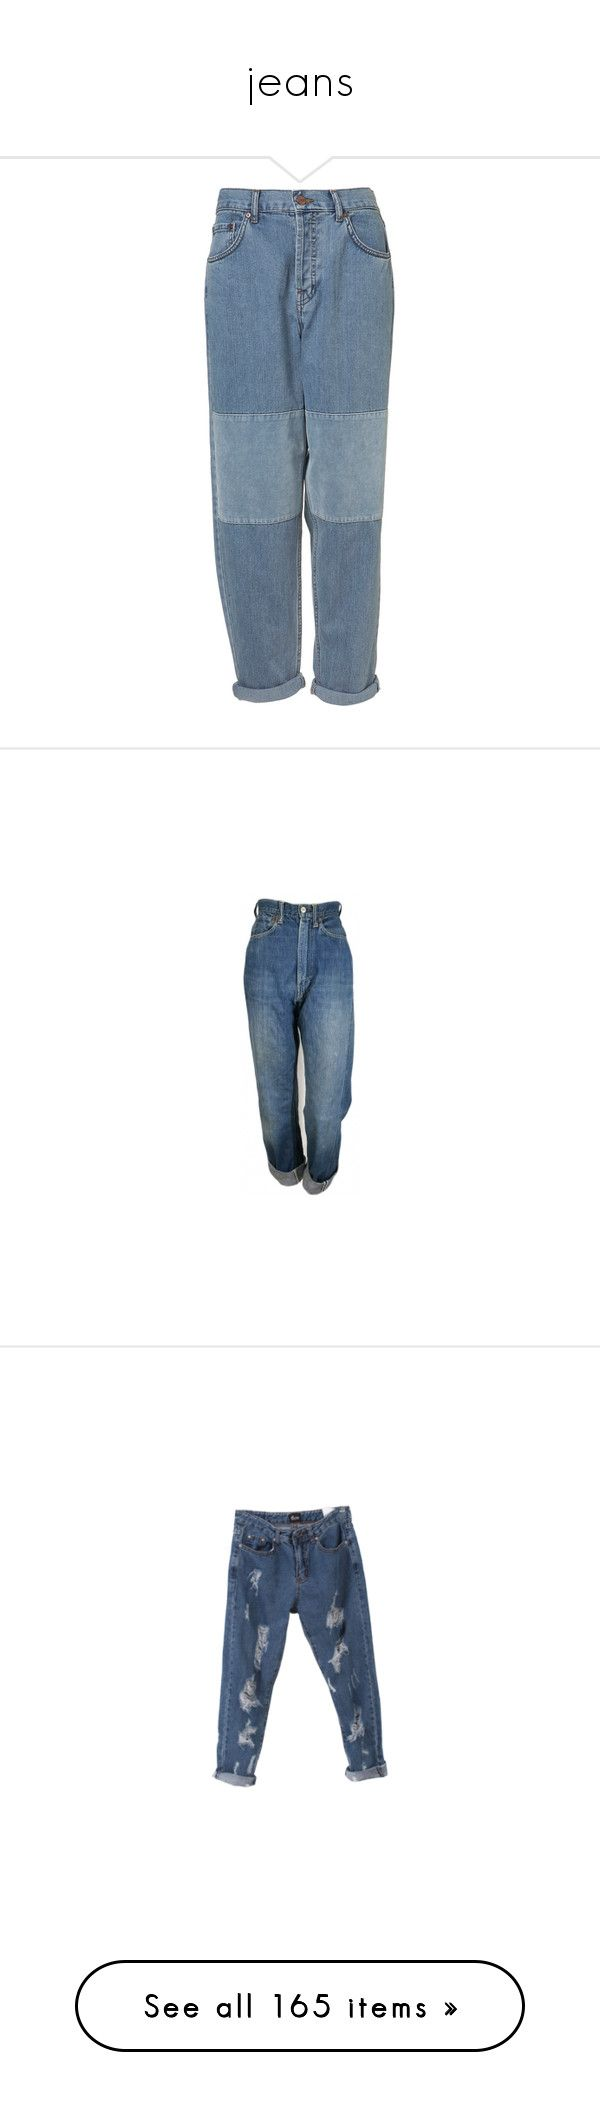 """""""jeans"""" by s8tan ❤ liked on Polyvore featuring pants, bottoms, jeans, trousers, denim, velvet jeans, slouch jeans, slouchy jeans, blue velvet jeans and rolled up jeans"""